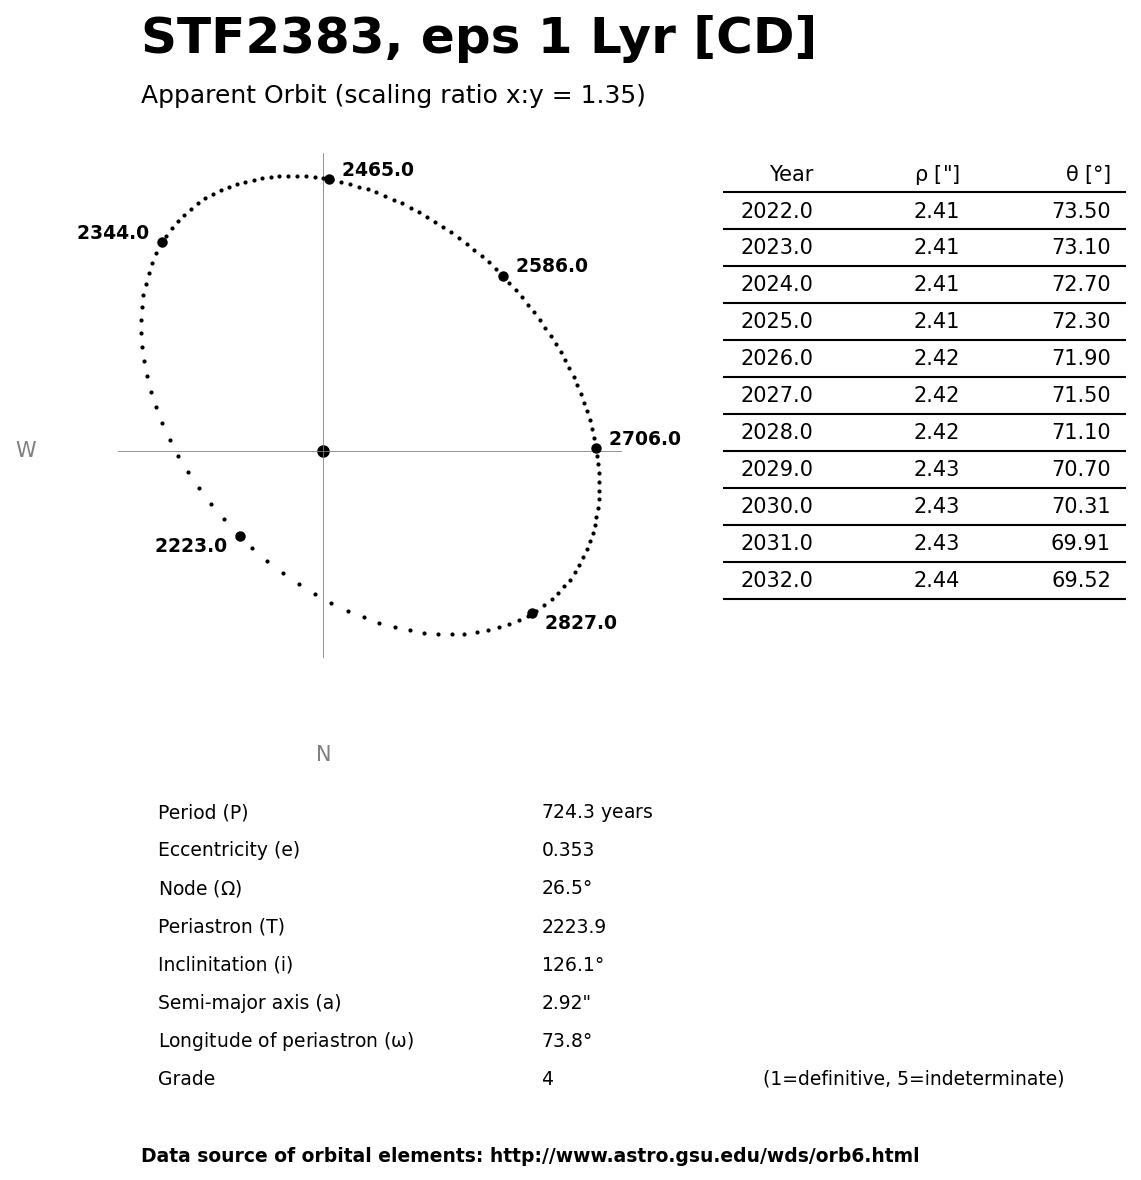 ../images/binary-star-orbits/STF2383-CD-orbit.jpg